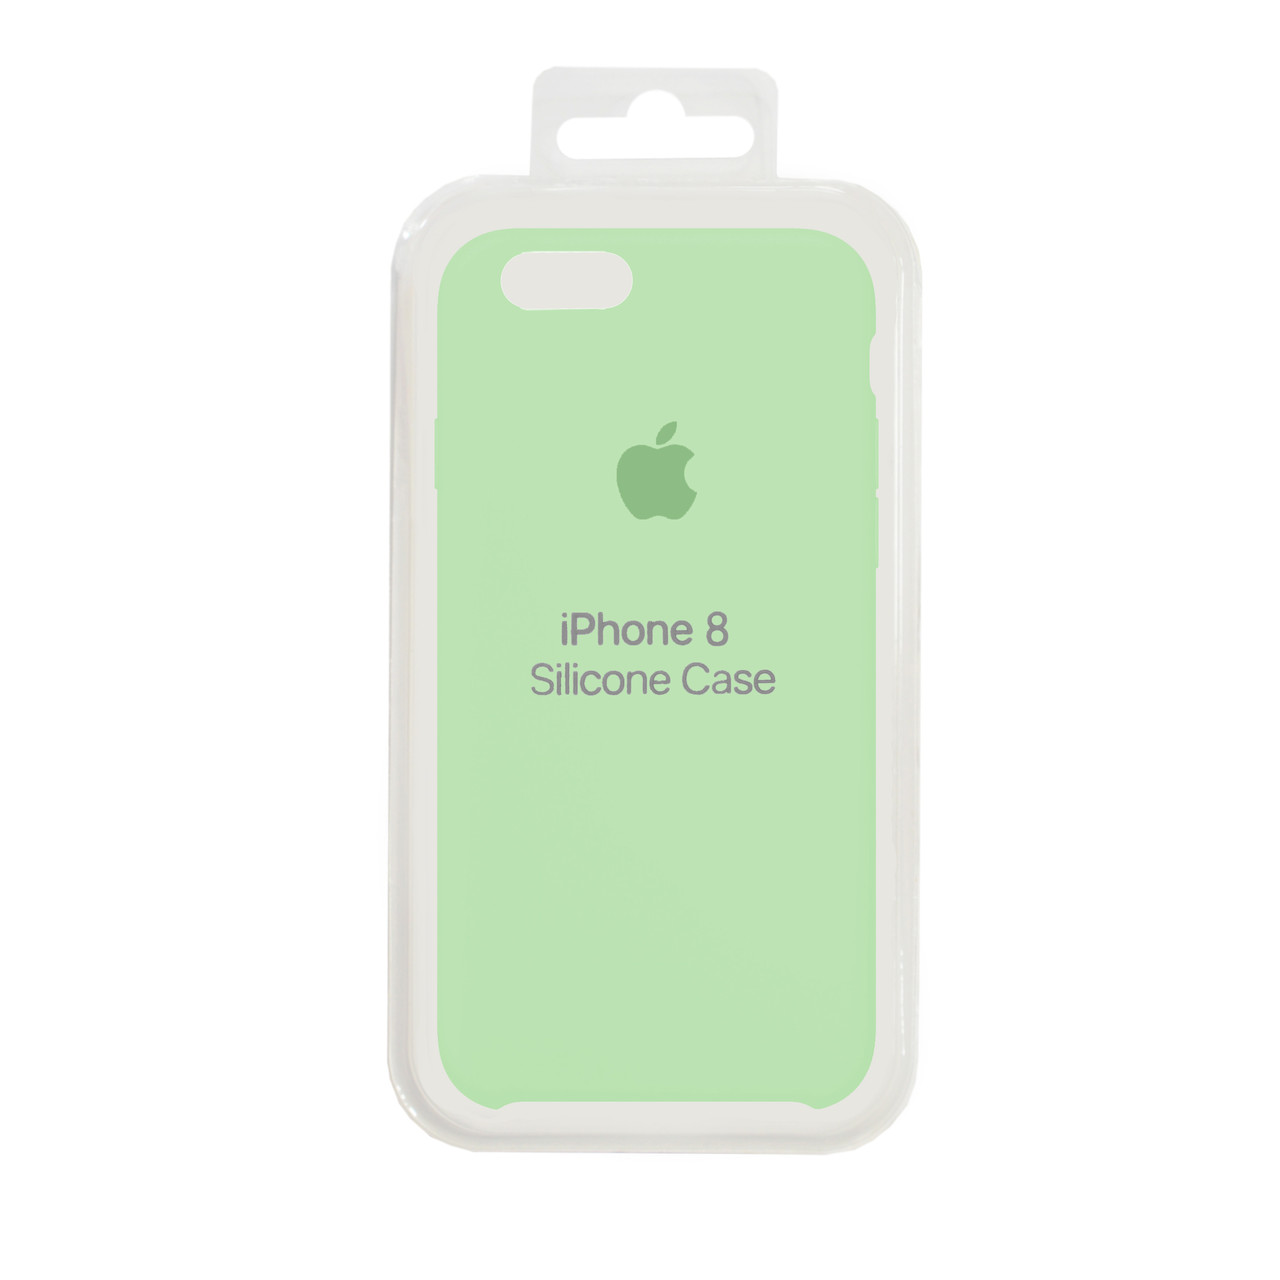 buy online ea24d 5e8a1 Silicone Case Original for iPhone 7/8 Marine Green